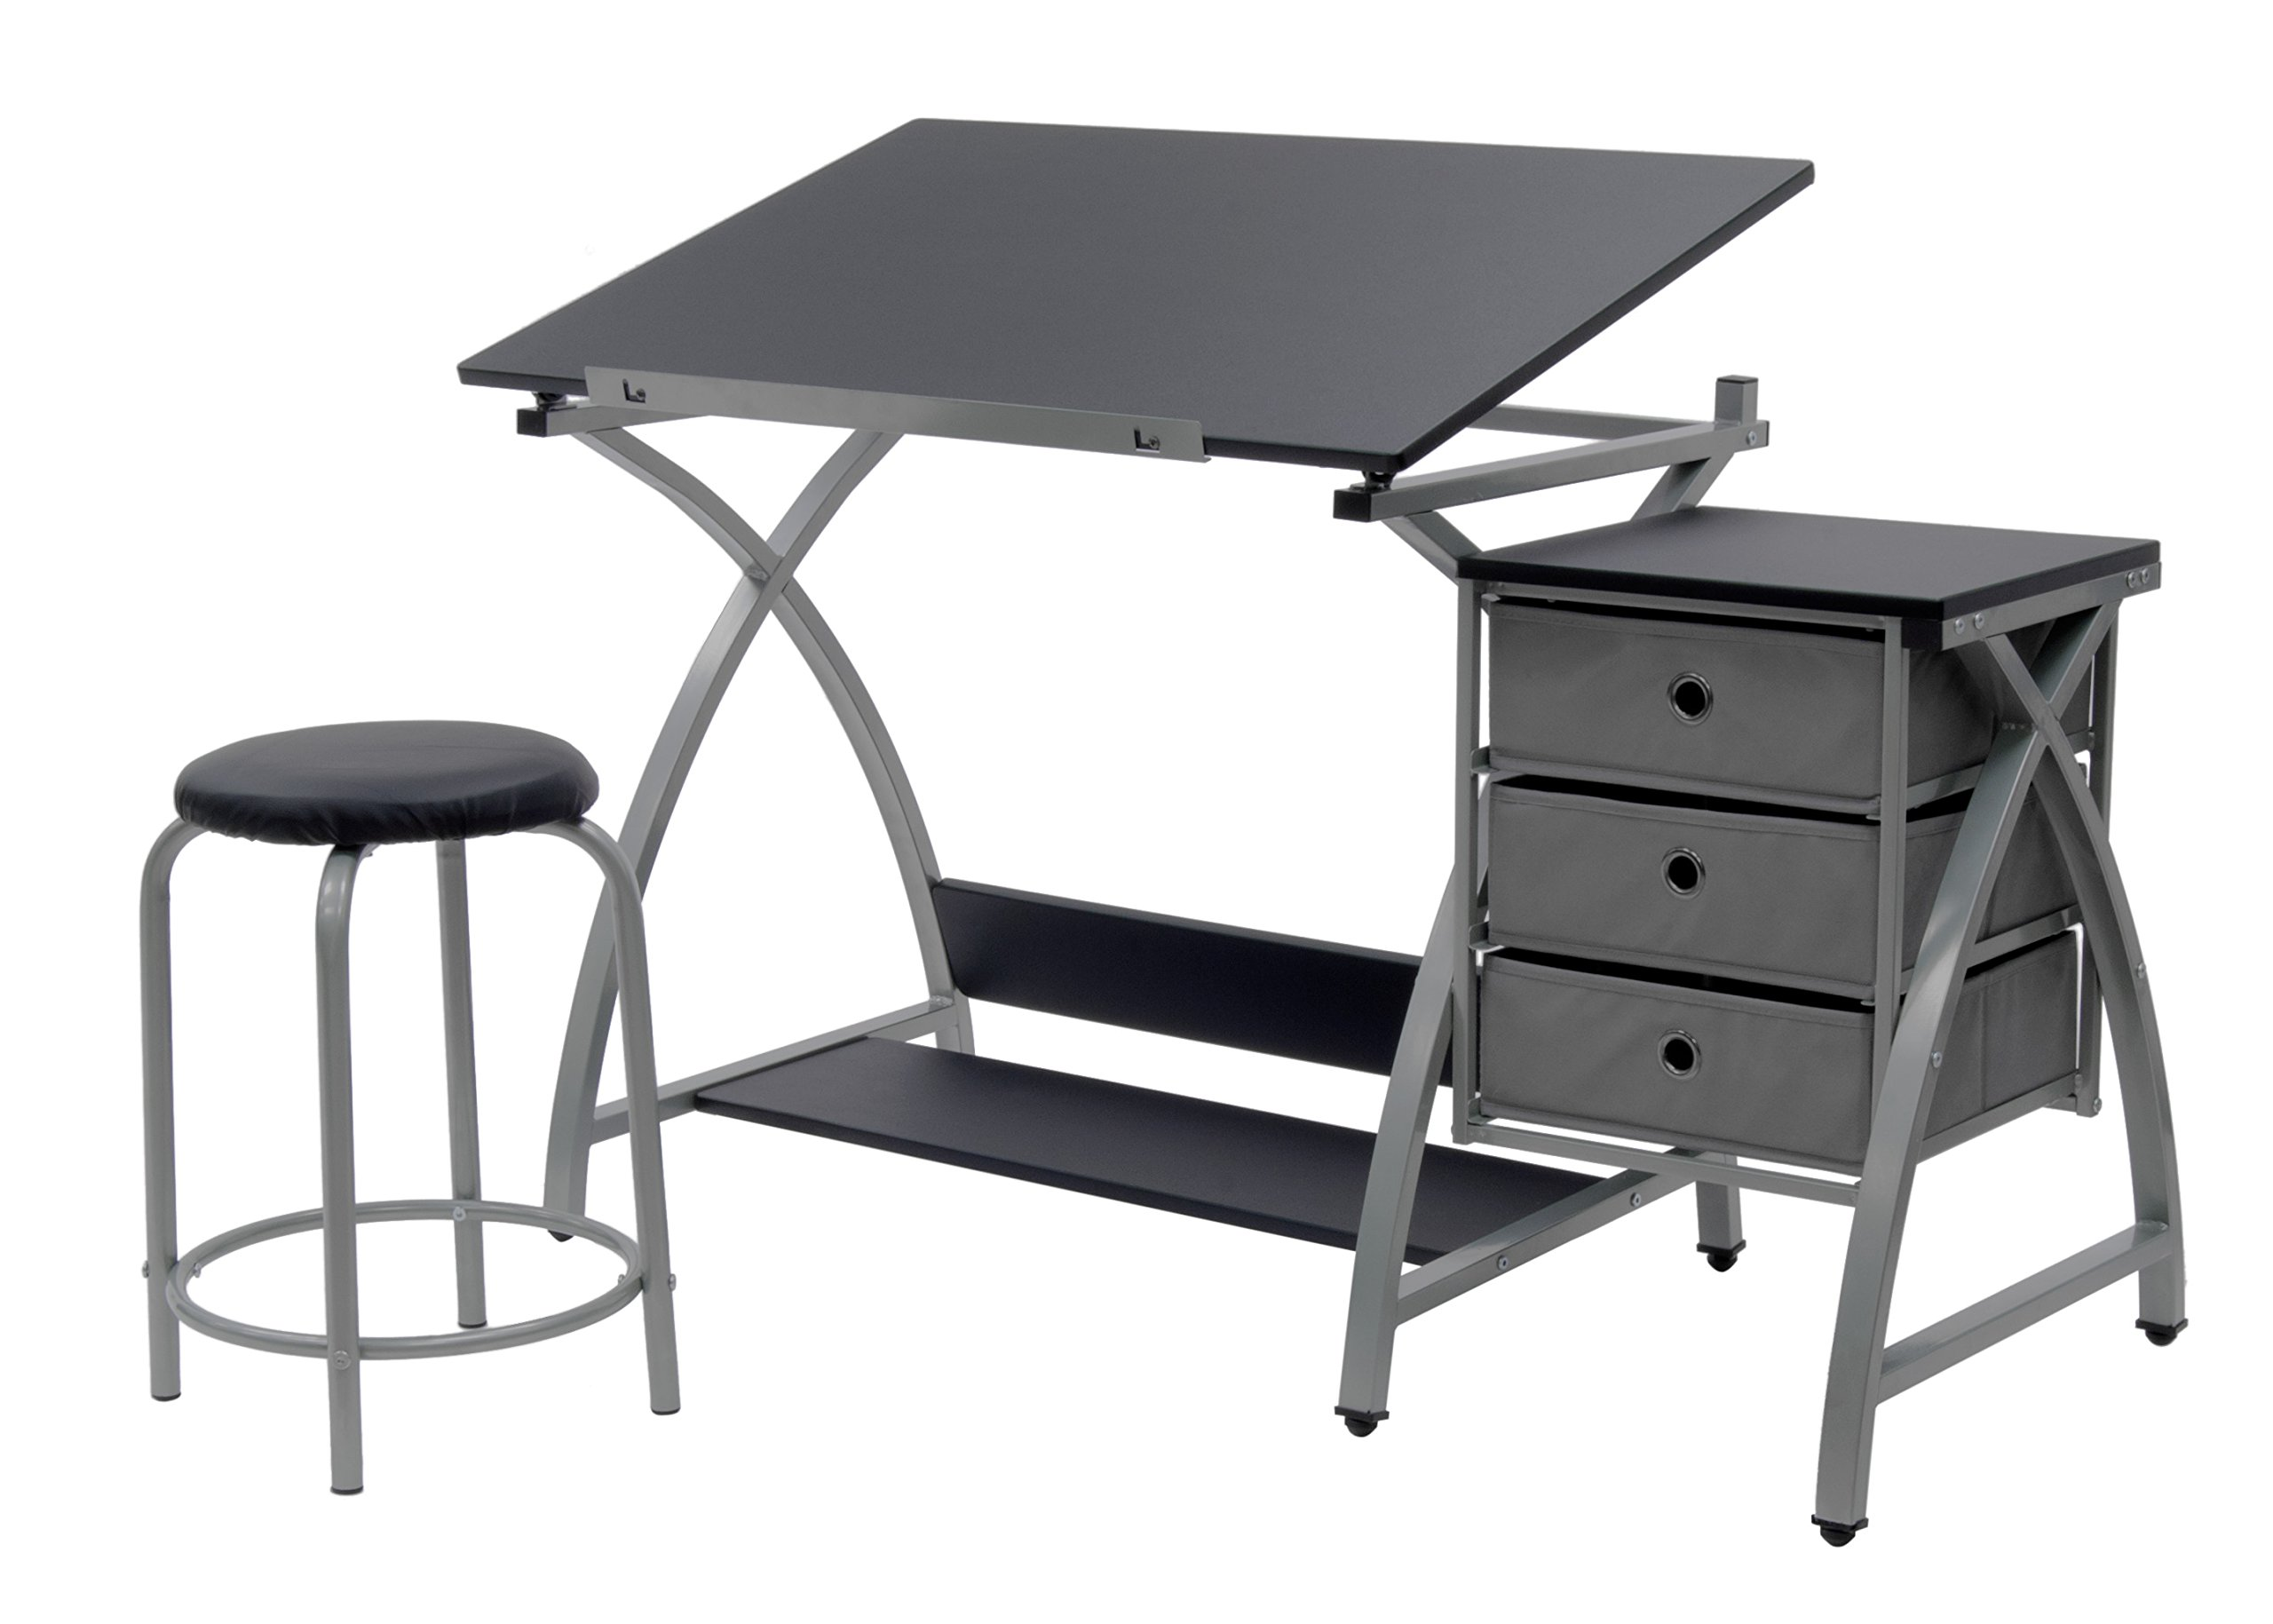 SD Studio Designs Studio Designs 2 Piece Comet Art, Hobby, Drawing, Drafting, Craft Table with 36''W x 23.75''D Angle Adjustable Top and Stool in Silver/Black, Assembled Dimensions: 50'' W x x 29.5'' H by SD STUDIO DESIGNS